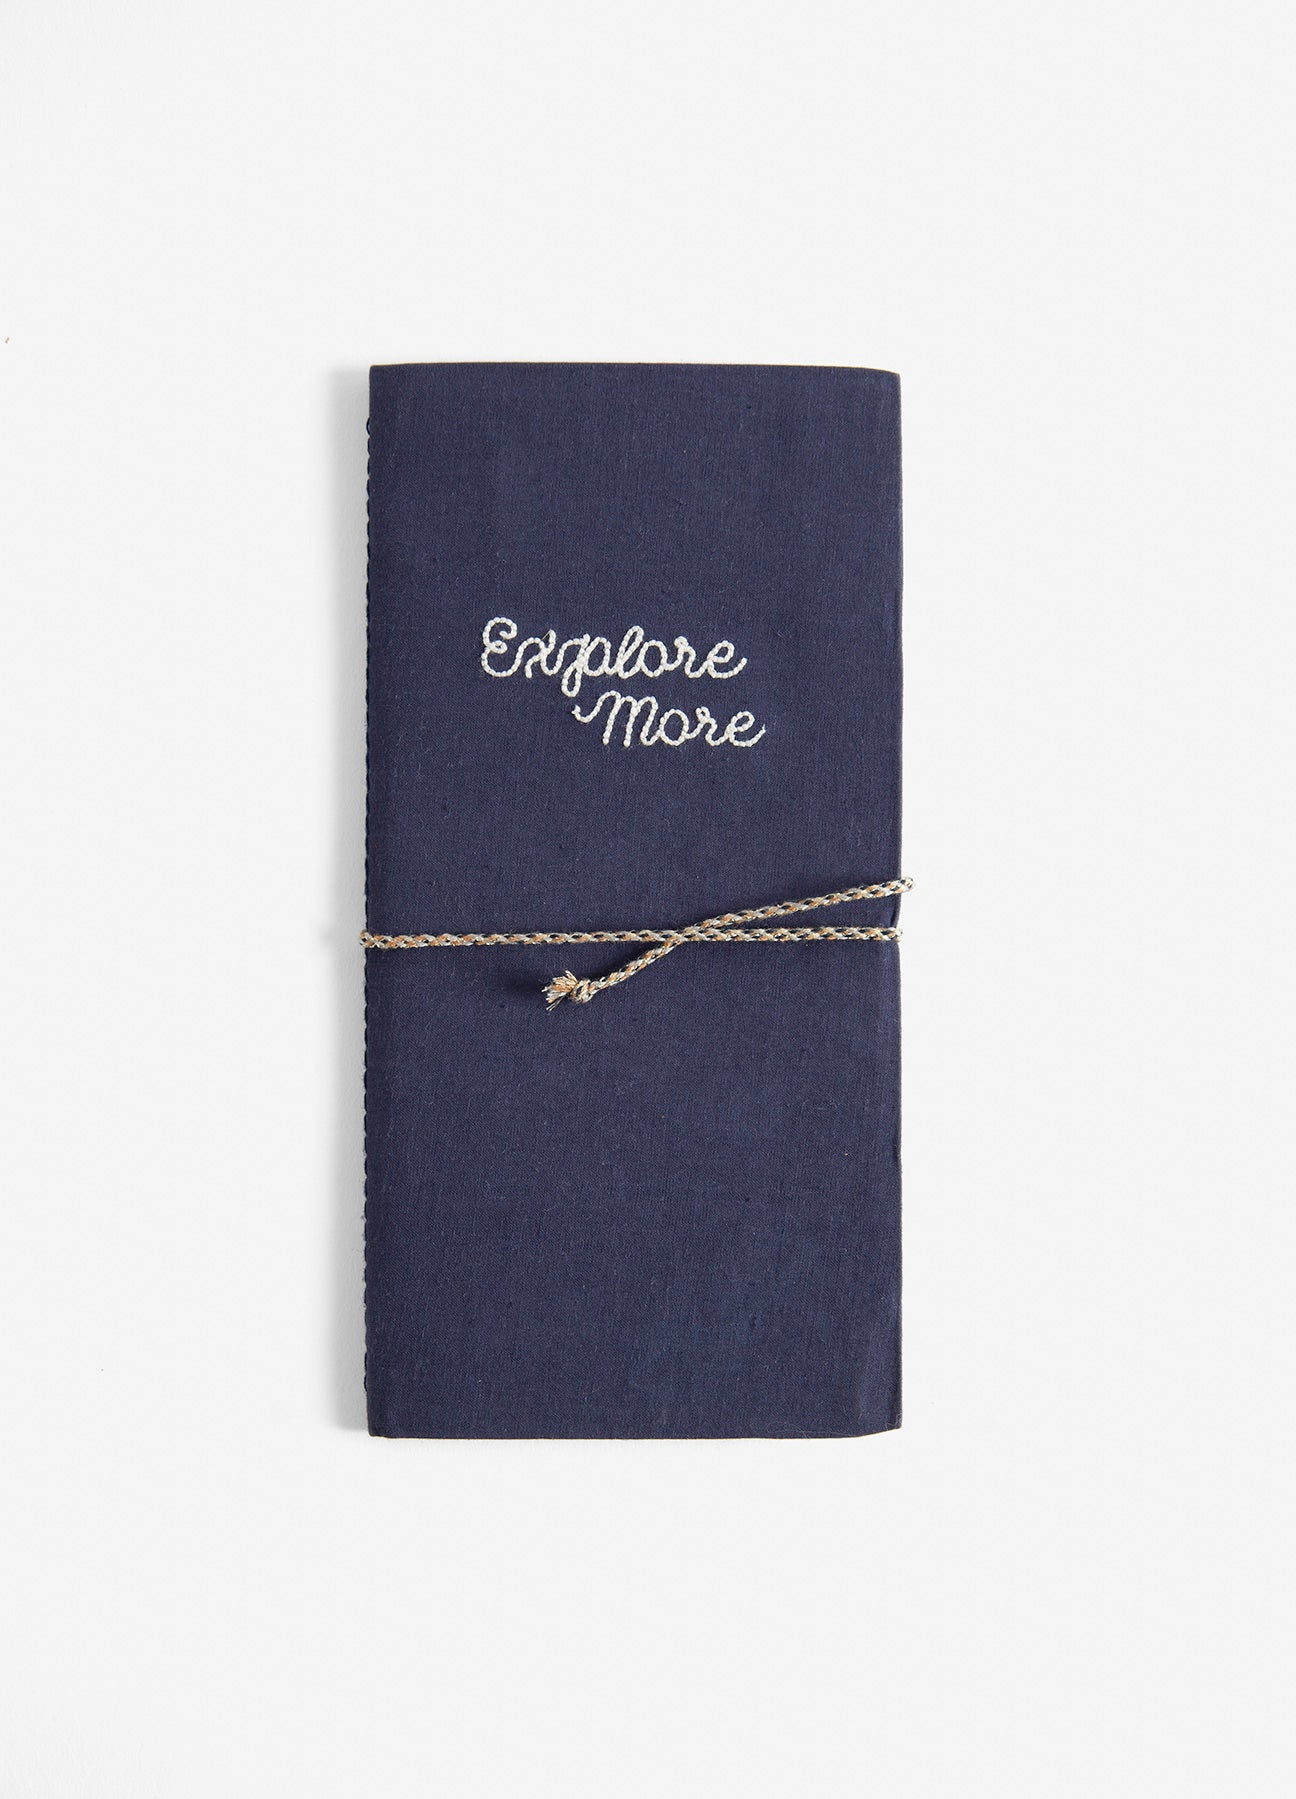 Explore More - Embroidered Cotton Travel Journal - Navy